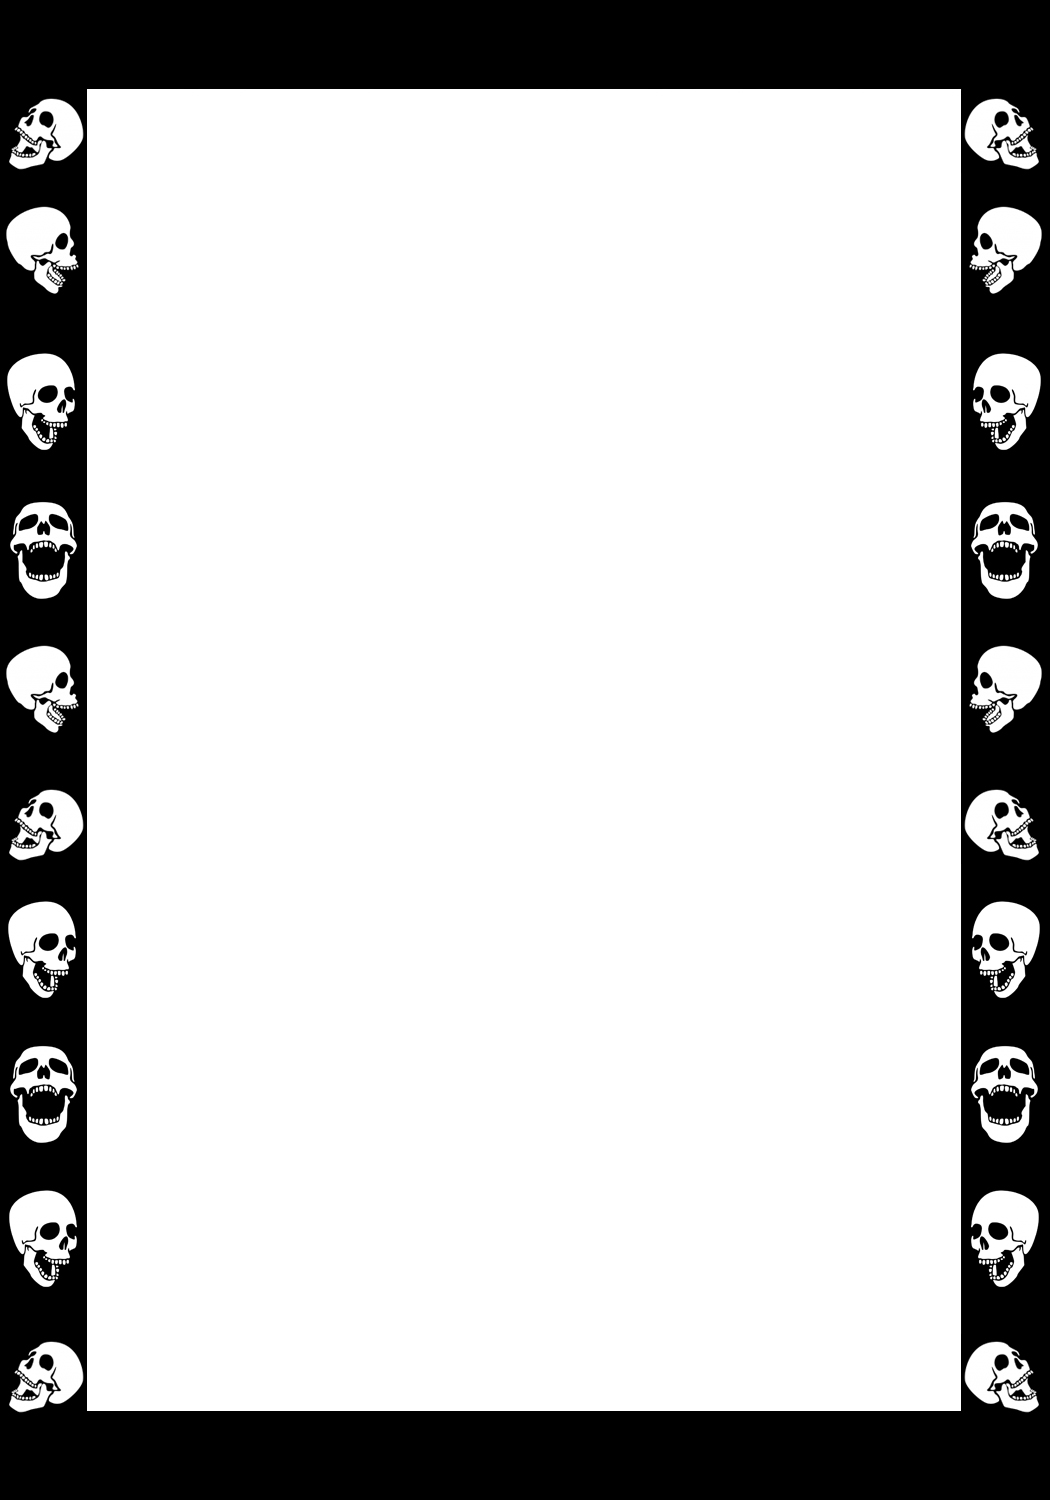 photograph about Free Printable Halloween Borders known as Halloween Borders and Frames